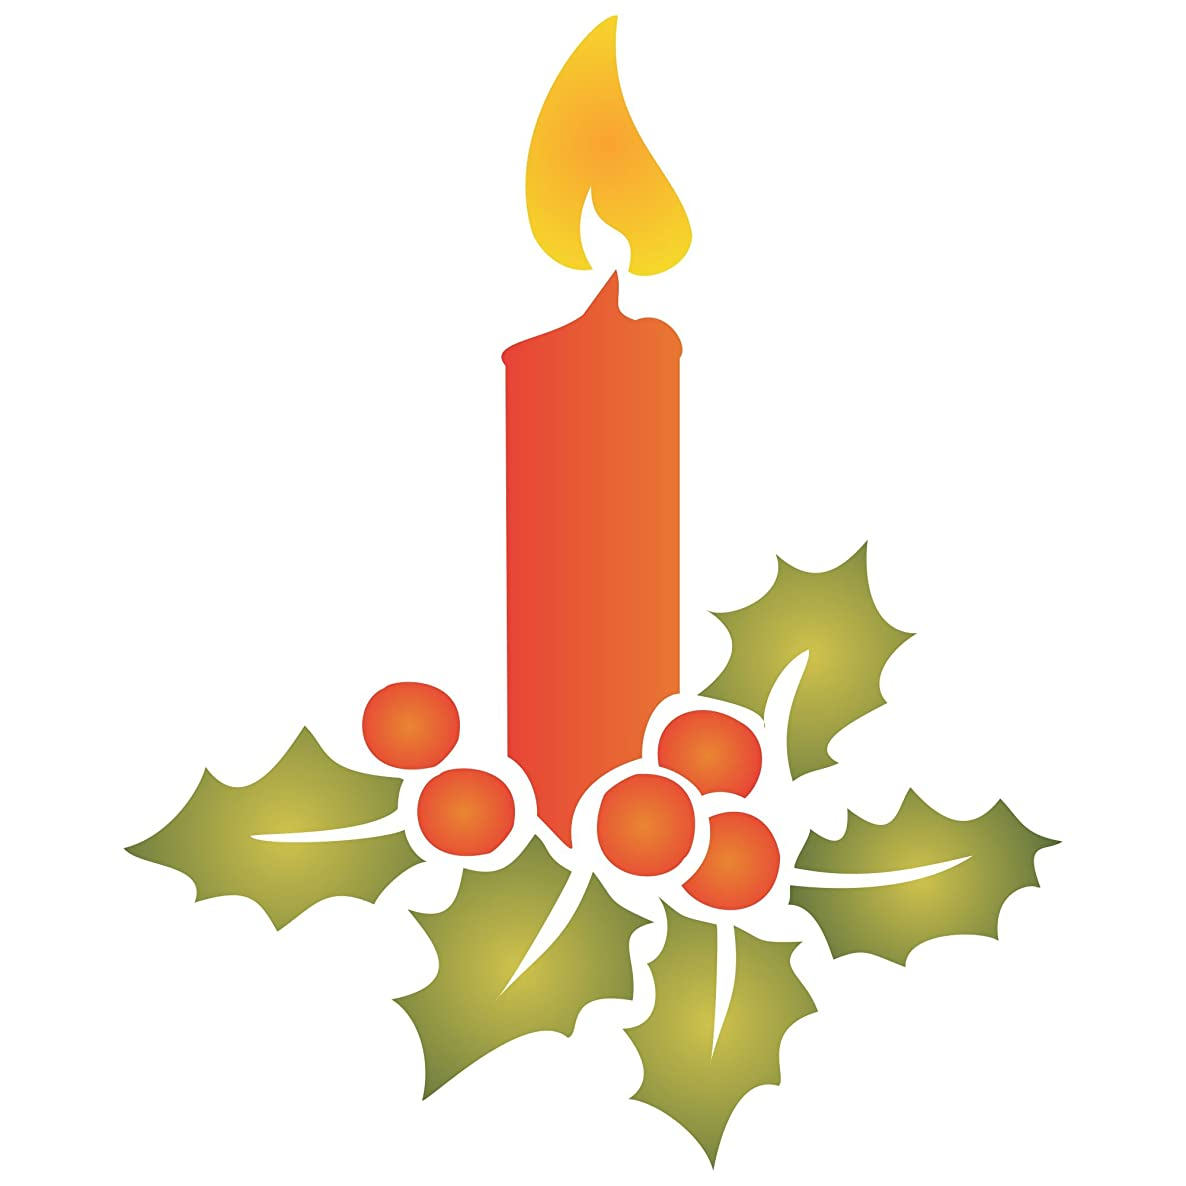 """Christmas Candle Stencil - 3.25""""w x 4""""h - Reusable Wall Stencils for Painting - Christmas Scrapbooking Décor & Card Ideas - Use on Walls, Floors, Fabrics, Glass, Wood, Terracotta, and More…"""